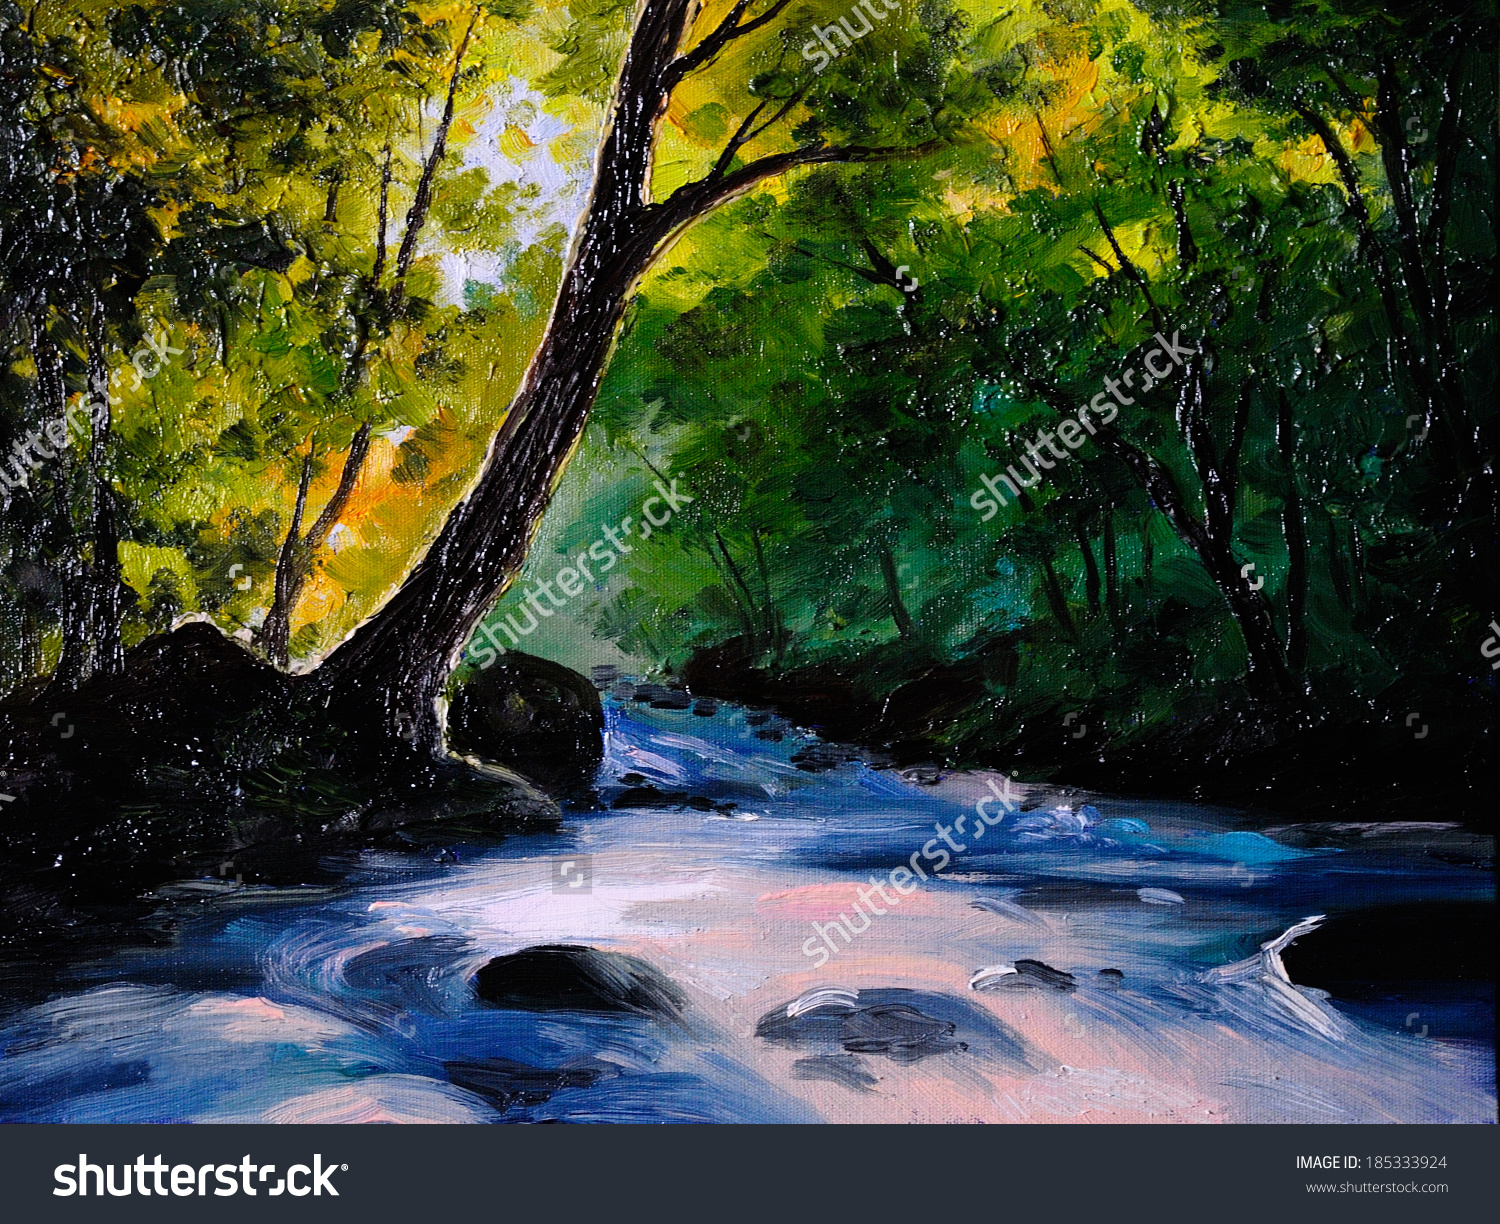 Painting Picture Oil Painting On Canvas Stock Illustration.